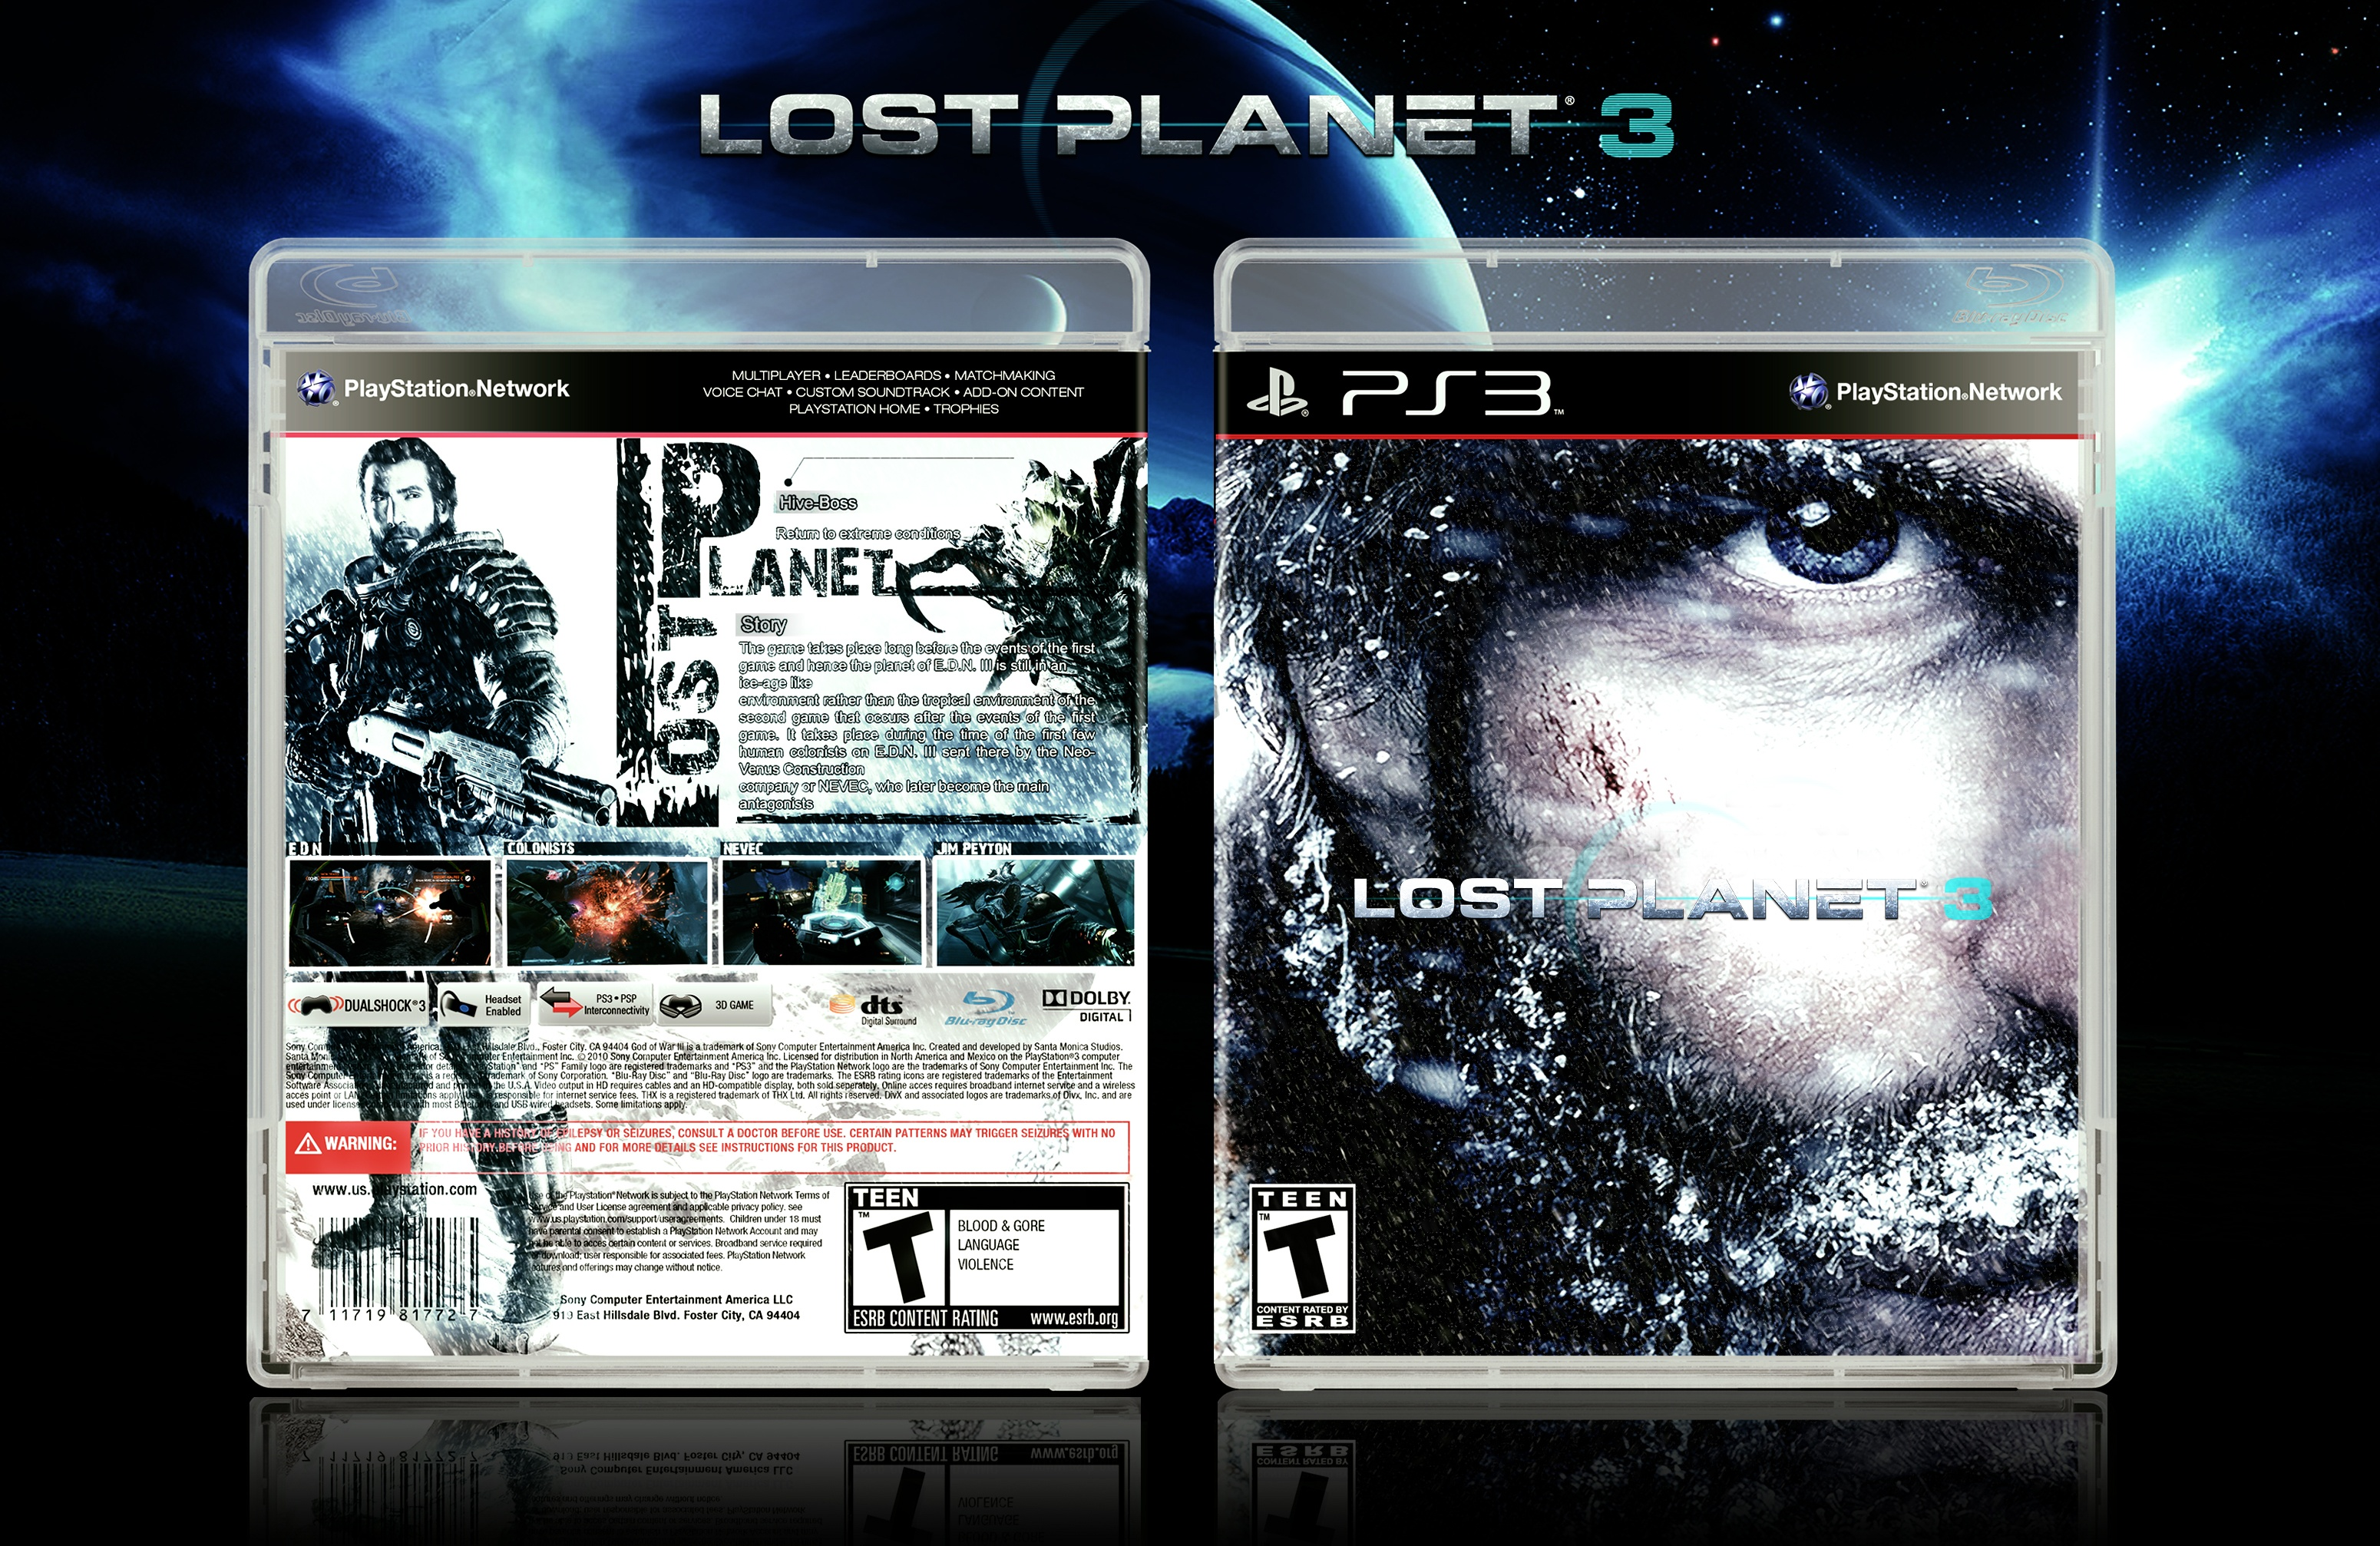 Lost Planet 3 box cover